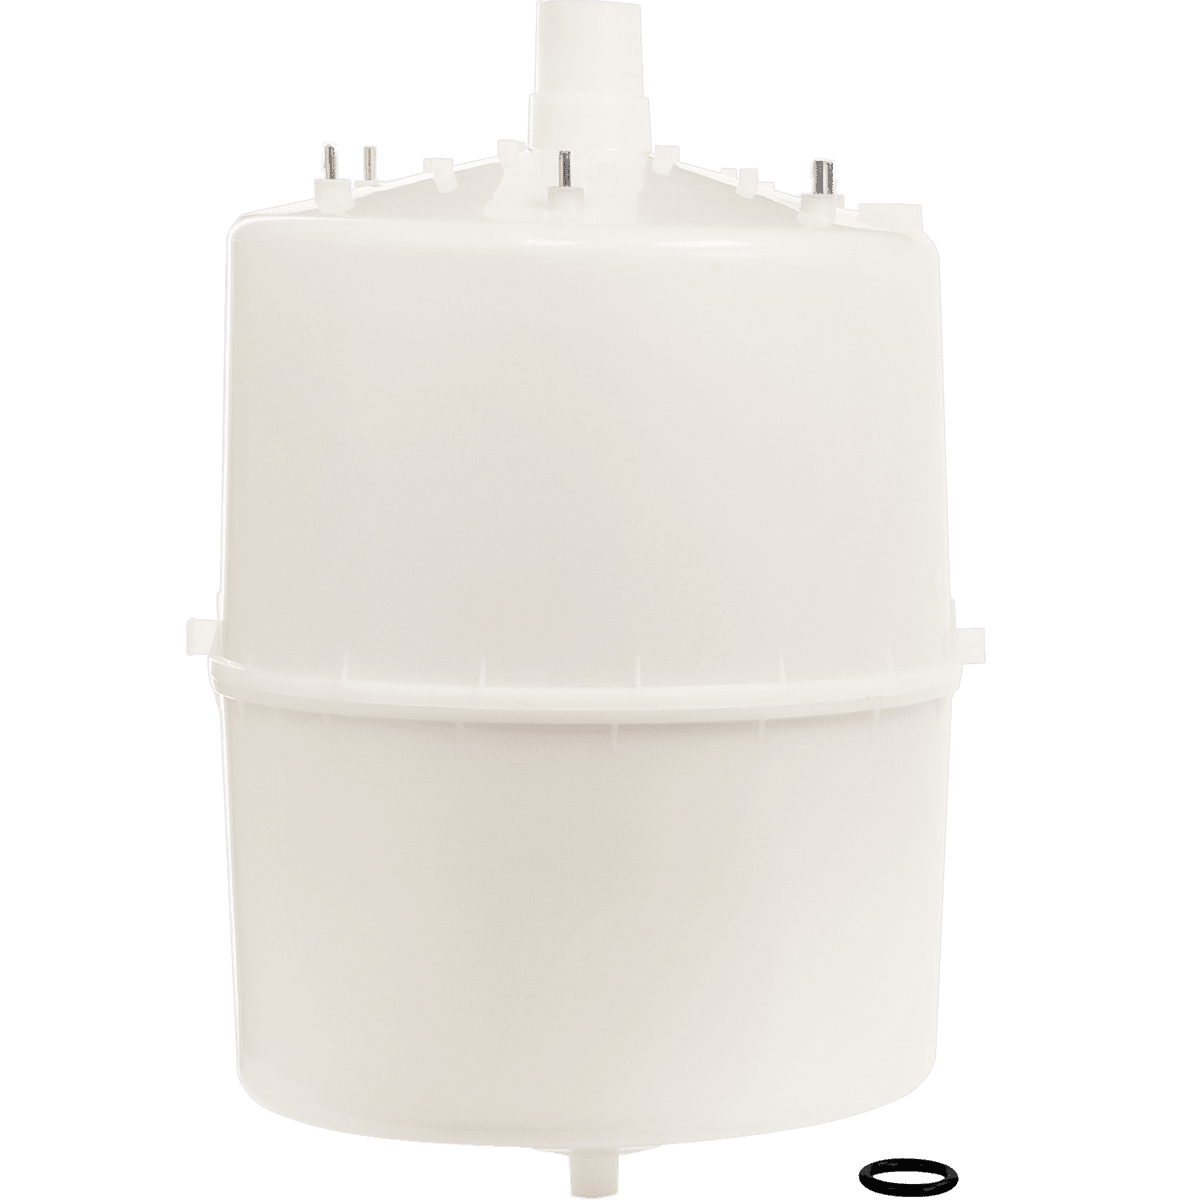 Aprilaire 607aac Steam Humidifier Cylinder (fits Nortec® 607)